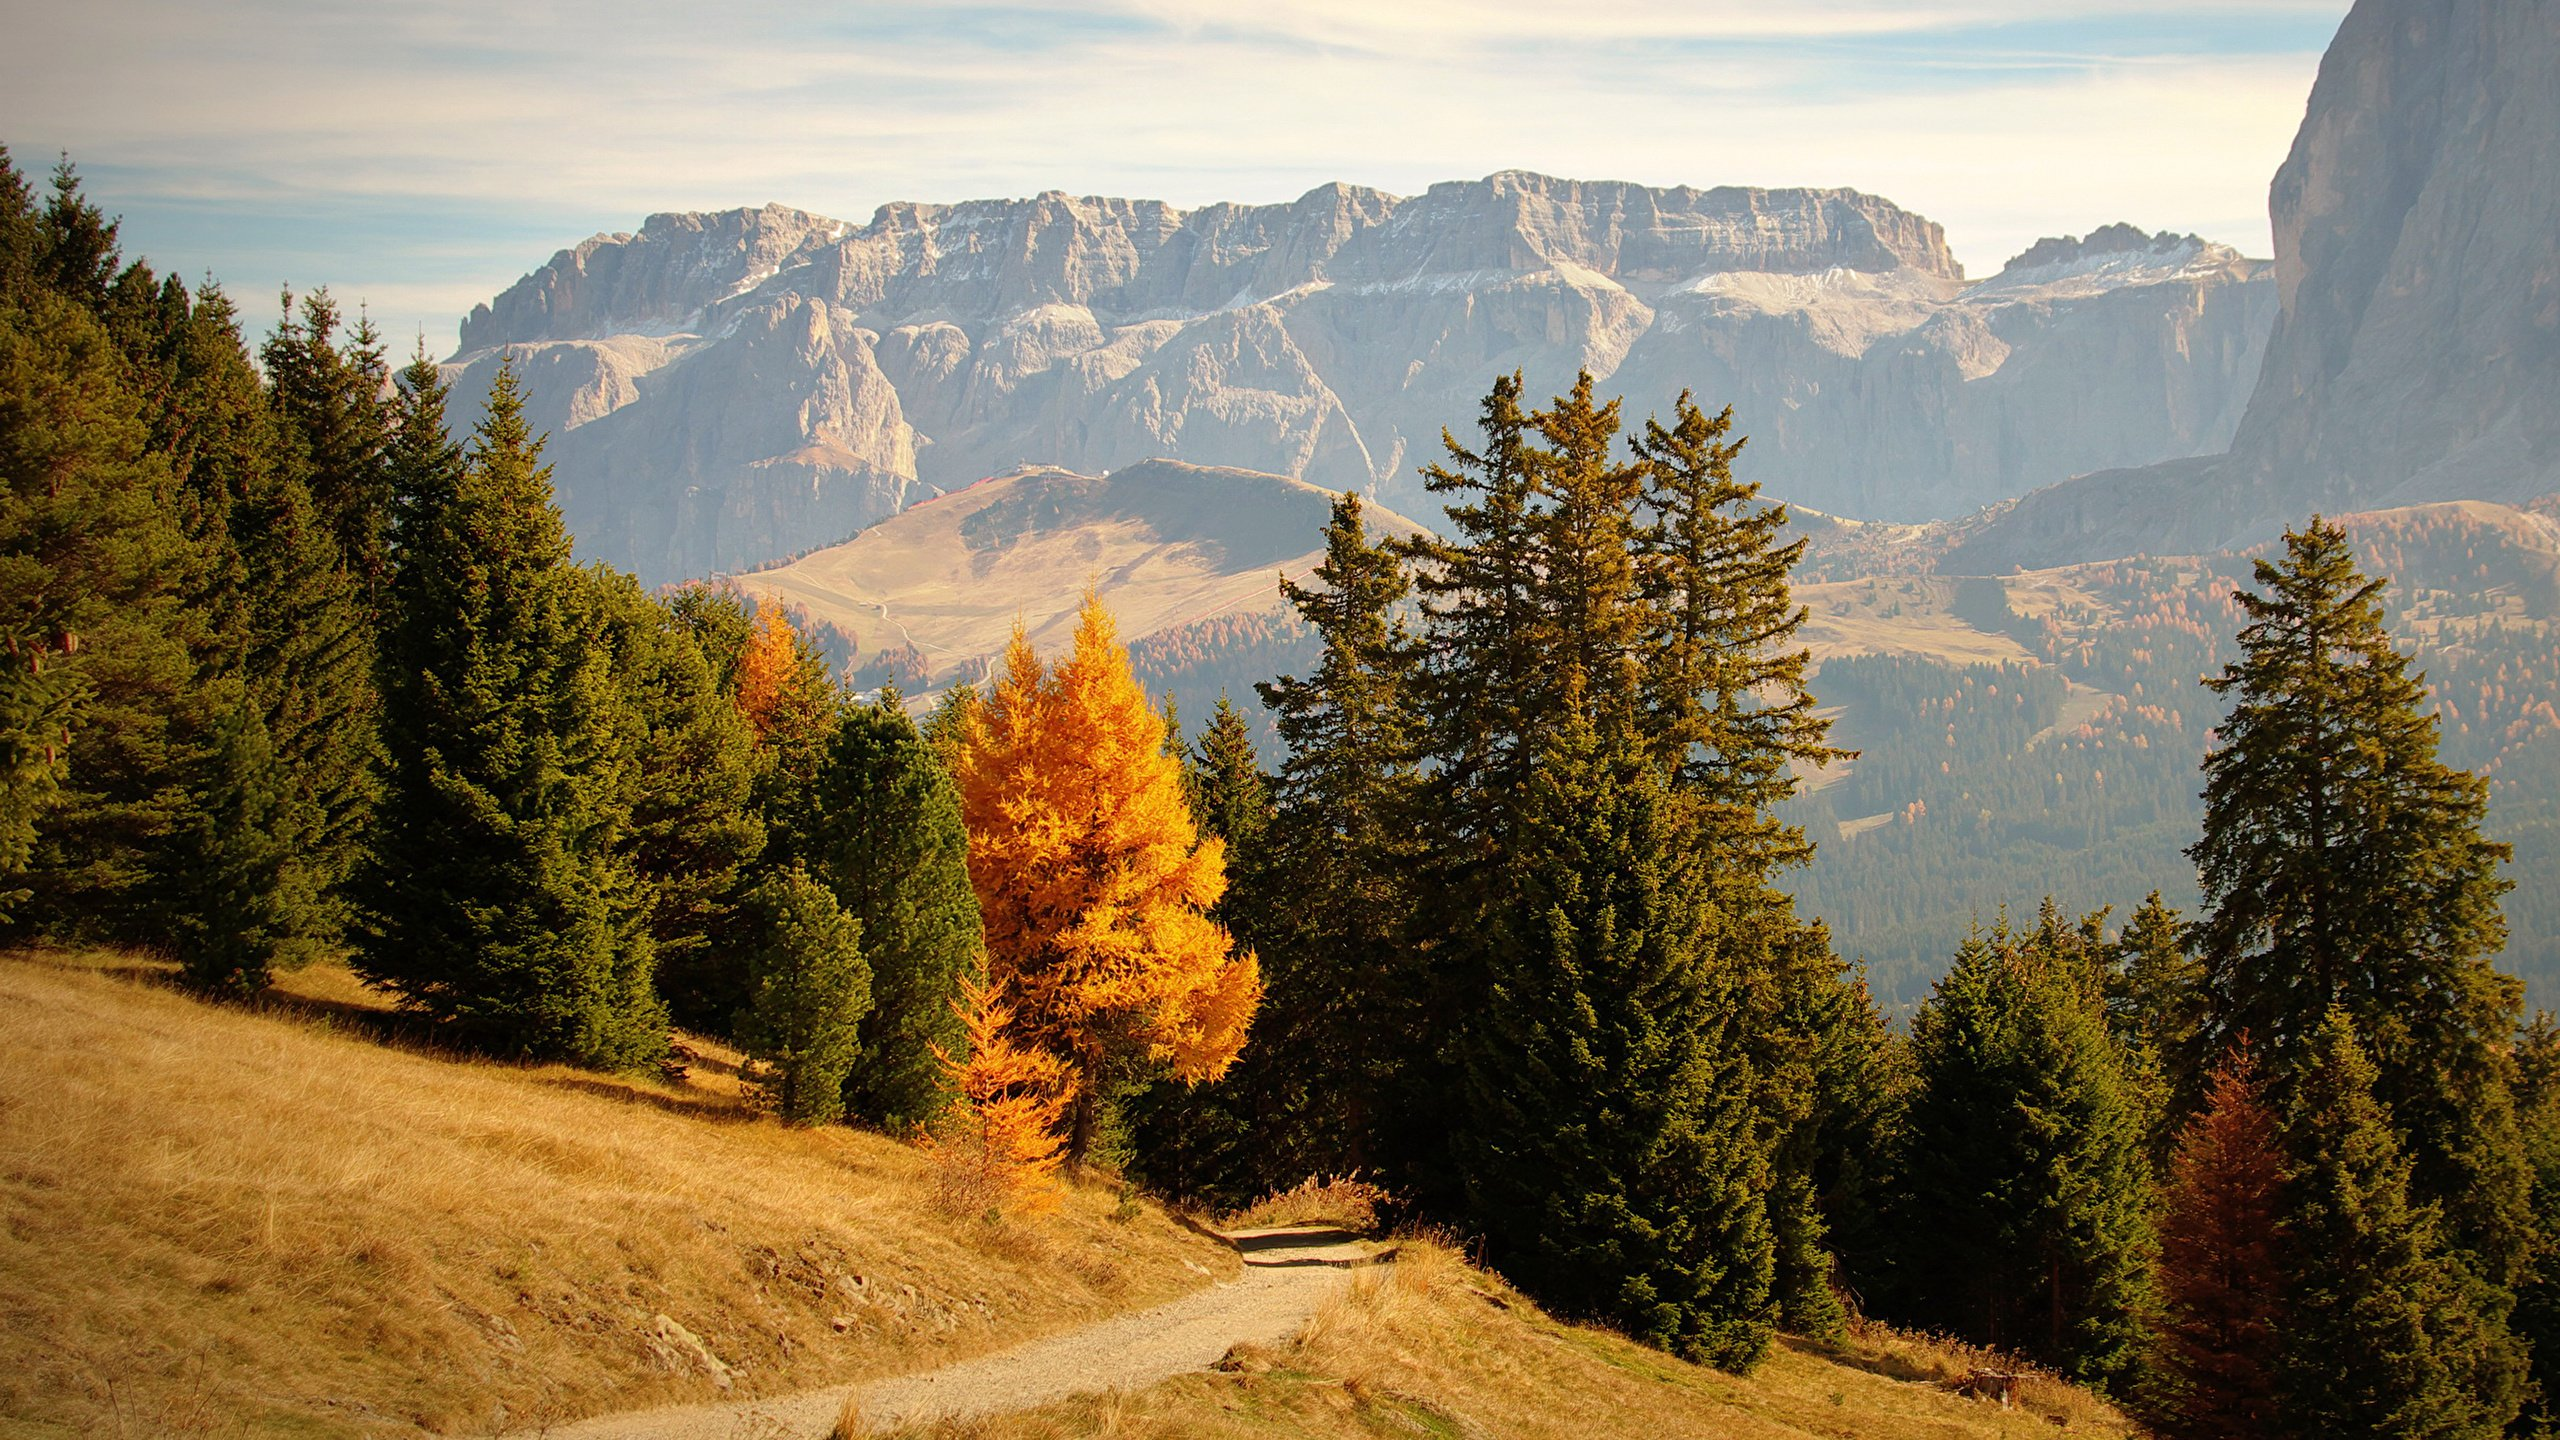 Images Italy Bolzano Trail Nature Spruce Autumn Mountains 2560x1440 2560x1440